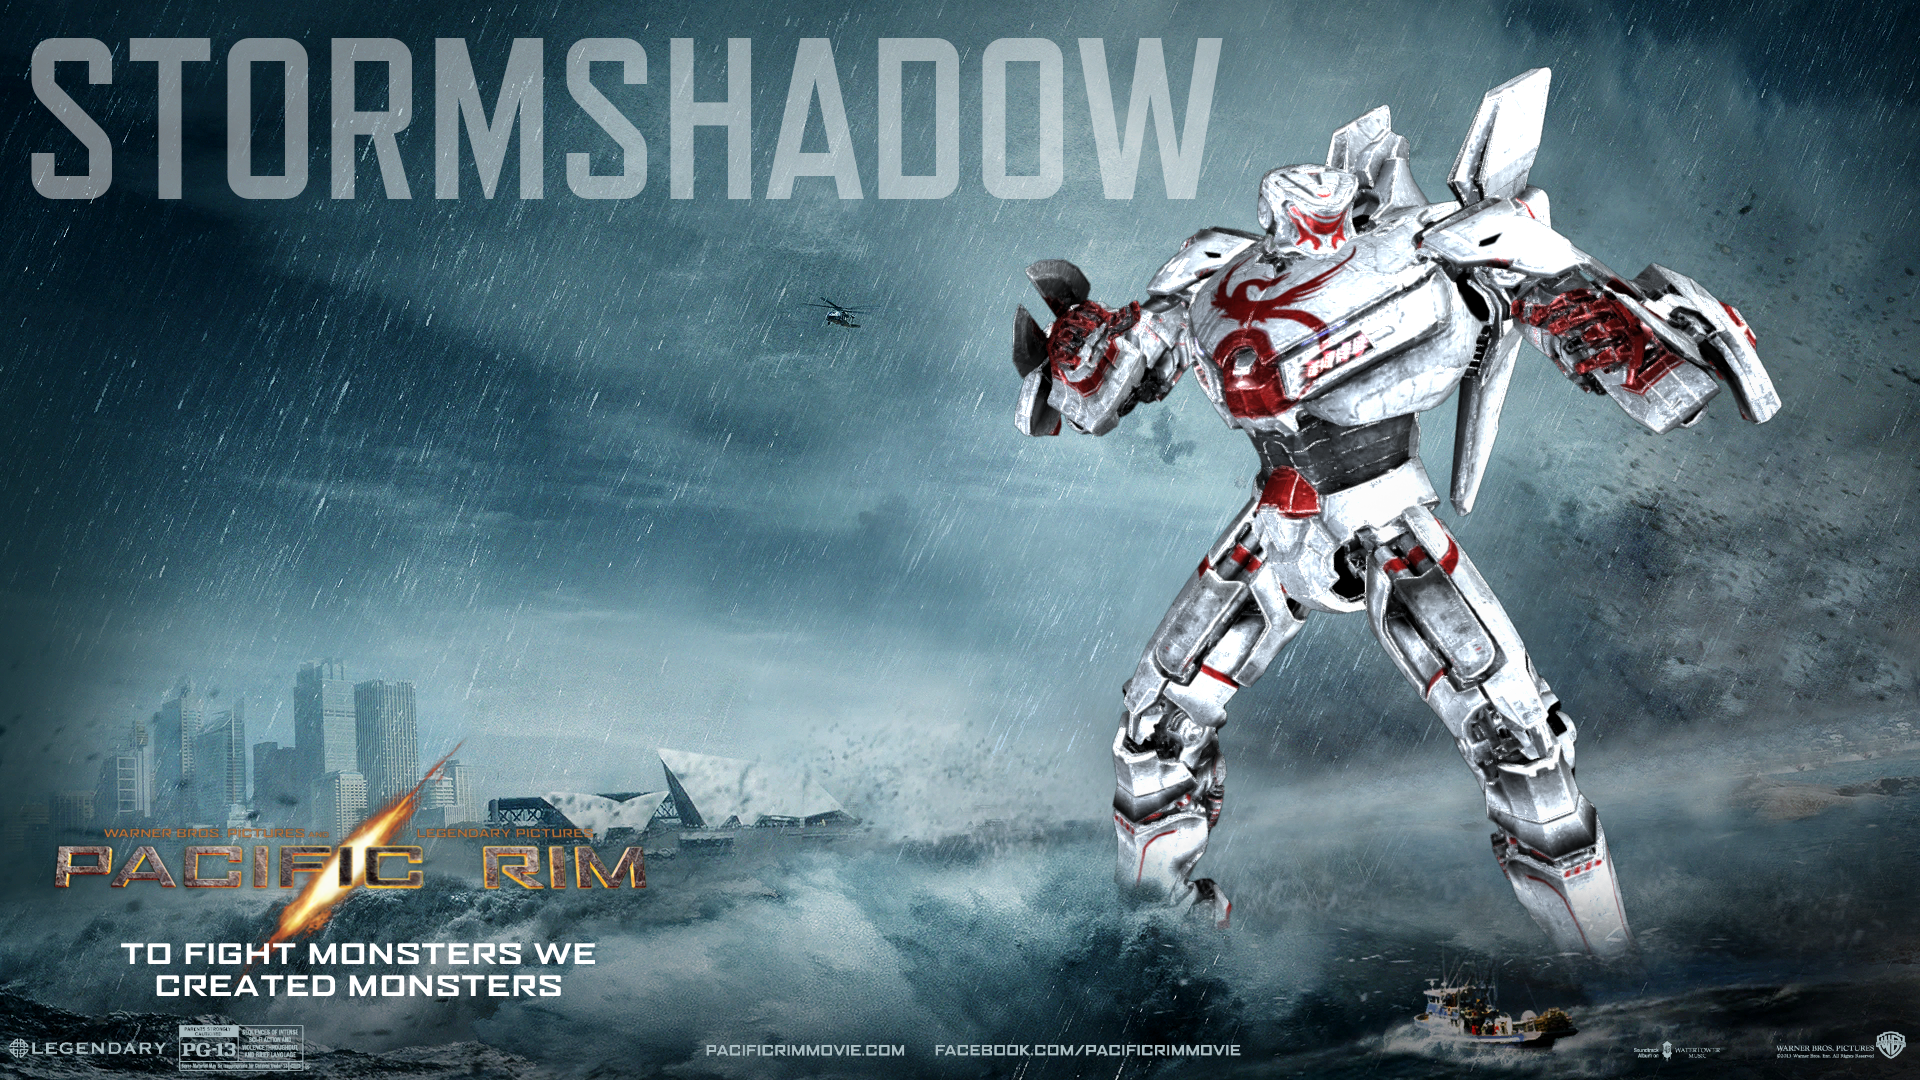 Pacific Rim Computer Wallpapers, Desktop Backgrounds | 1920x1080 | ID ...: wall.alphacoders.com/big.php?i=419768